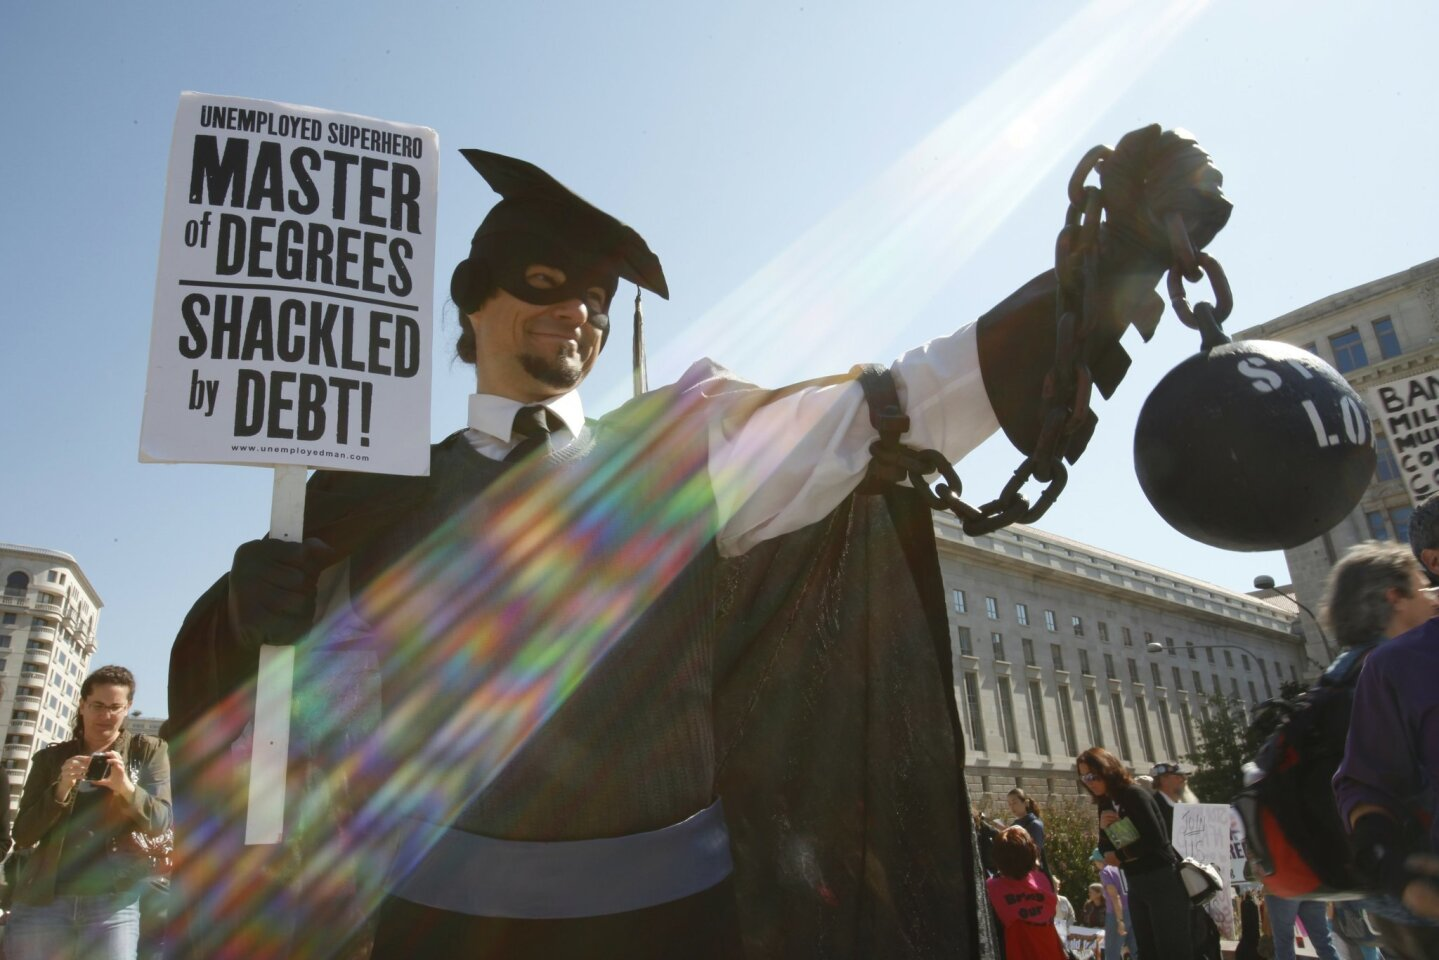 """A new report from Third Way, a public policy think tank in Washington D.C., reveals that not all four-year public universities are giving students, or taxpayers, a good return on their investment. The report shows that many first-time, full-time students are not graduating, are unable to earn more than $25,000 a year and cannot pay back college loans. Third way used federal data to calculate a """"mobility metric,"""" or a scorecard of how colleges serve freshmen with federal student loans. Click through to see the top 21 universities that are considered """"mobility engines"""" for their students. The schools are ranked on their overall mobility score and ranking. Data and rankings for each subcategory are shown as well, out of 535 colleges. Also: Search colleges for score on success metrics"""